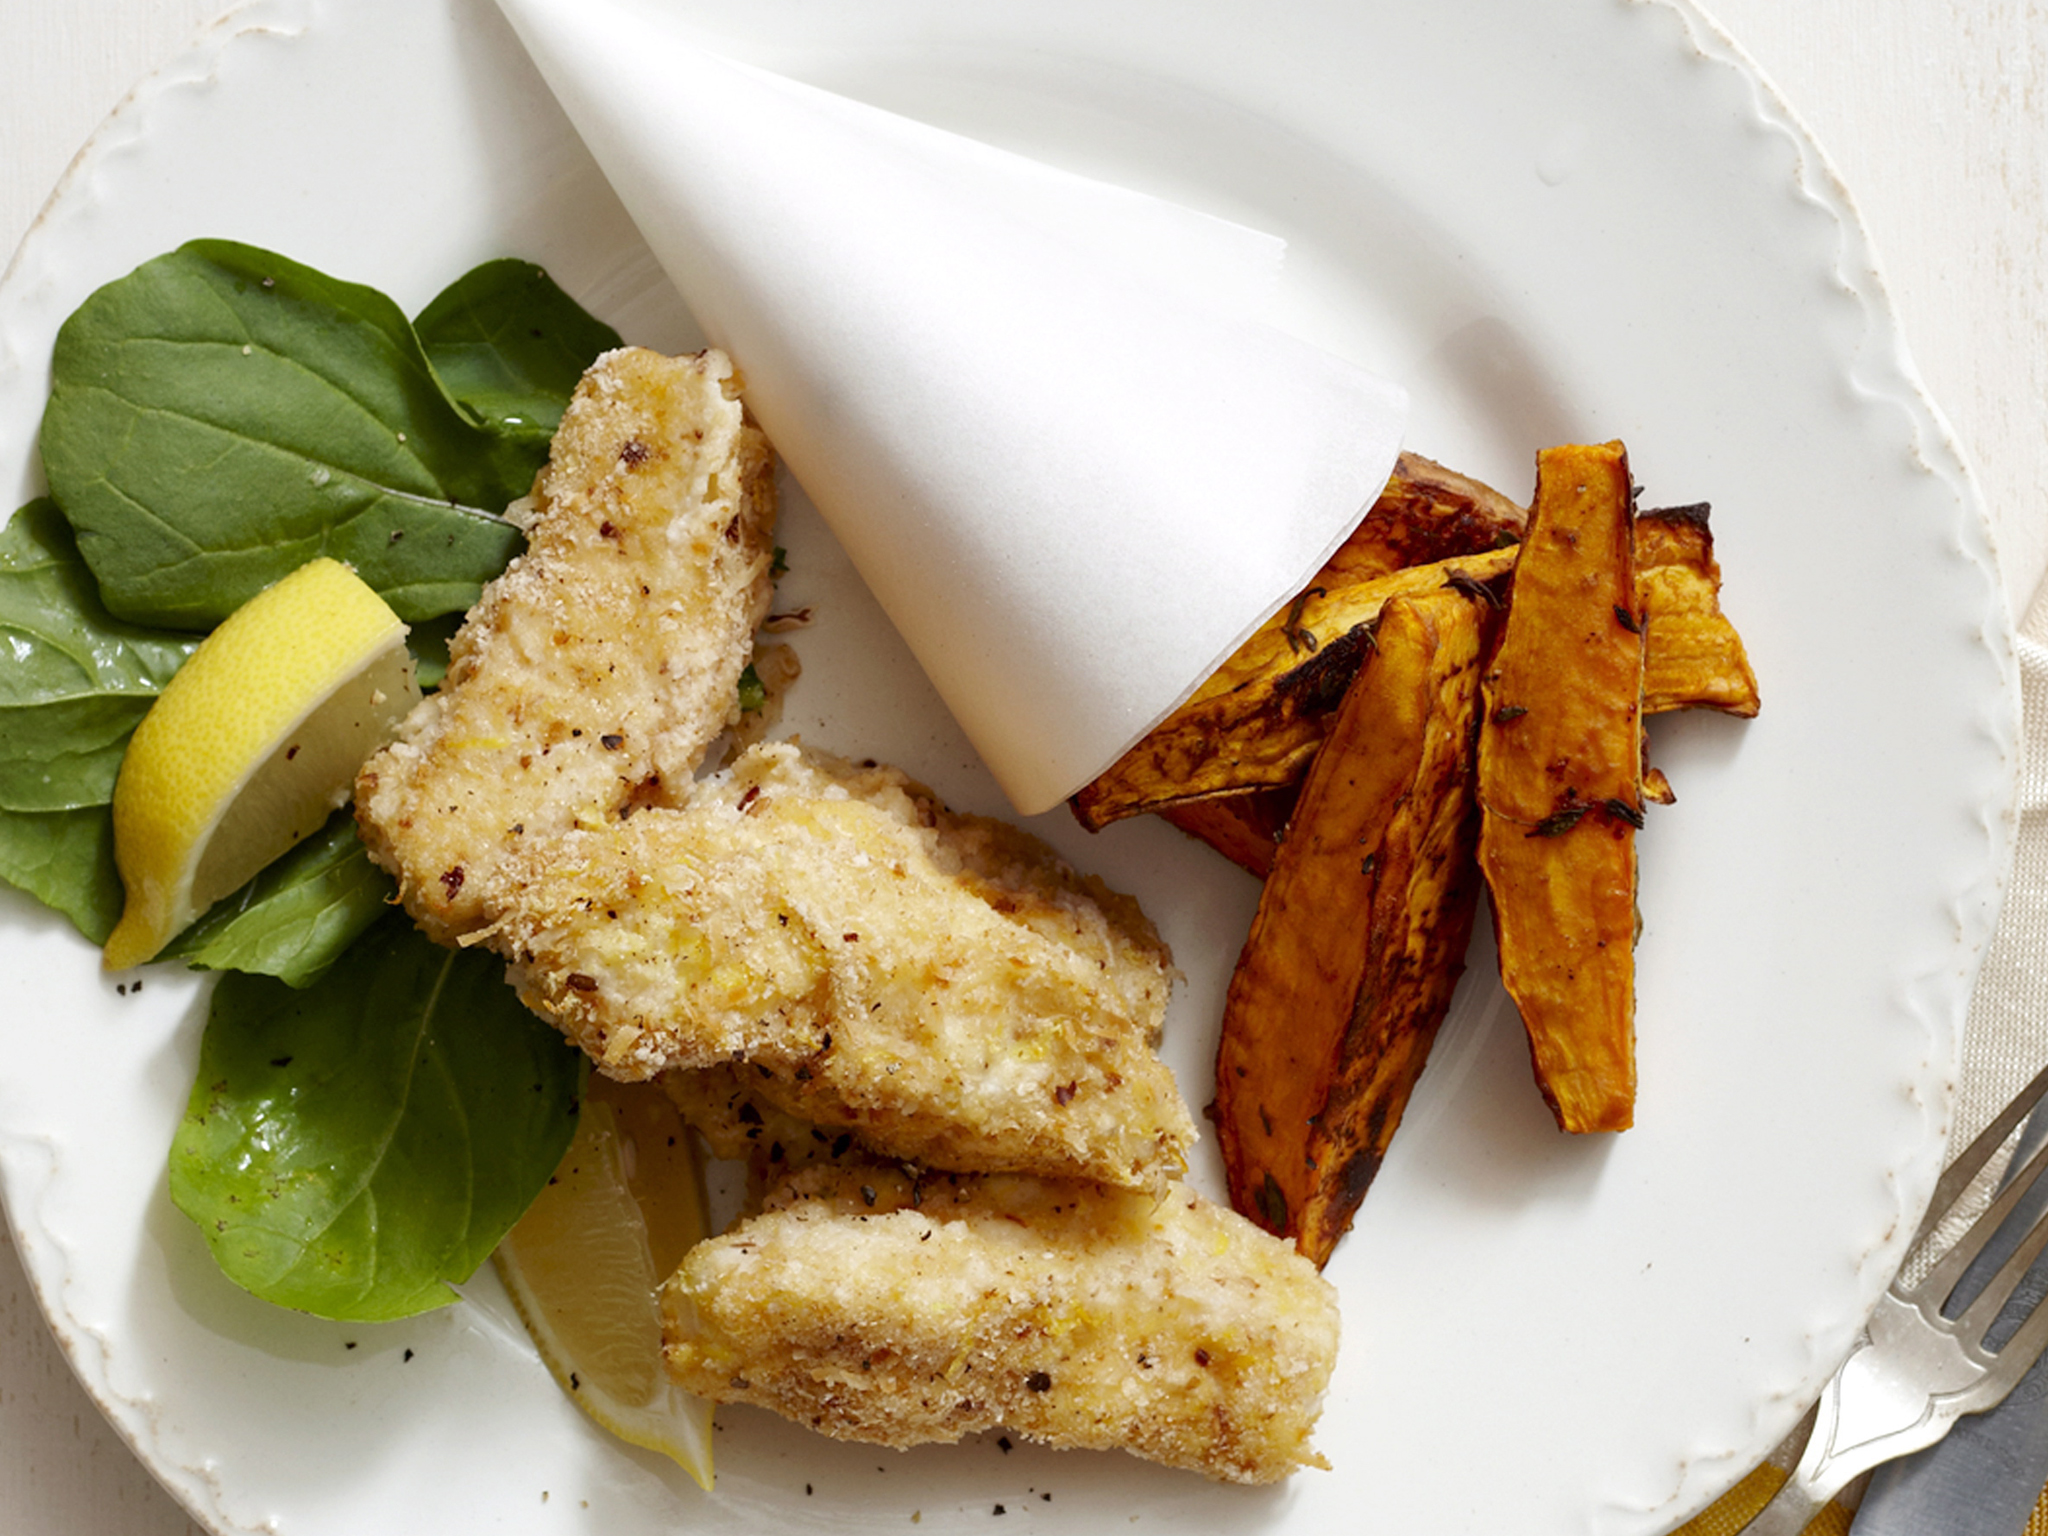 Crispy, Baked White Fish With Sweet Potato and Beet Curly Fries'